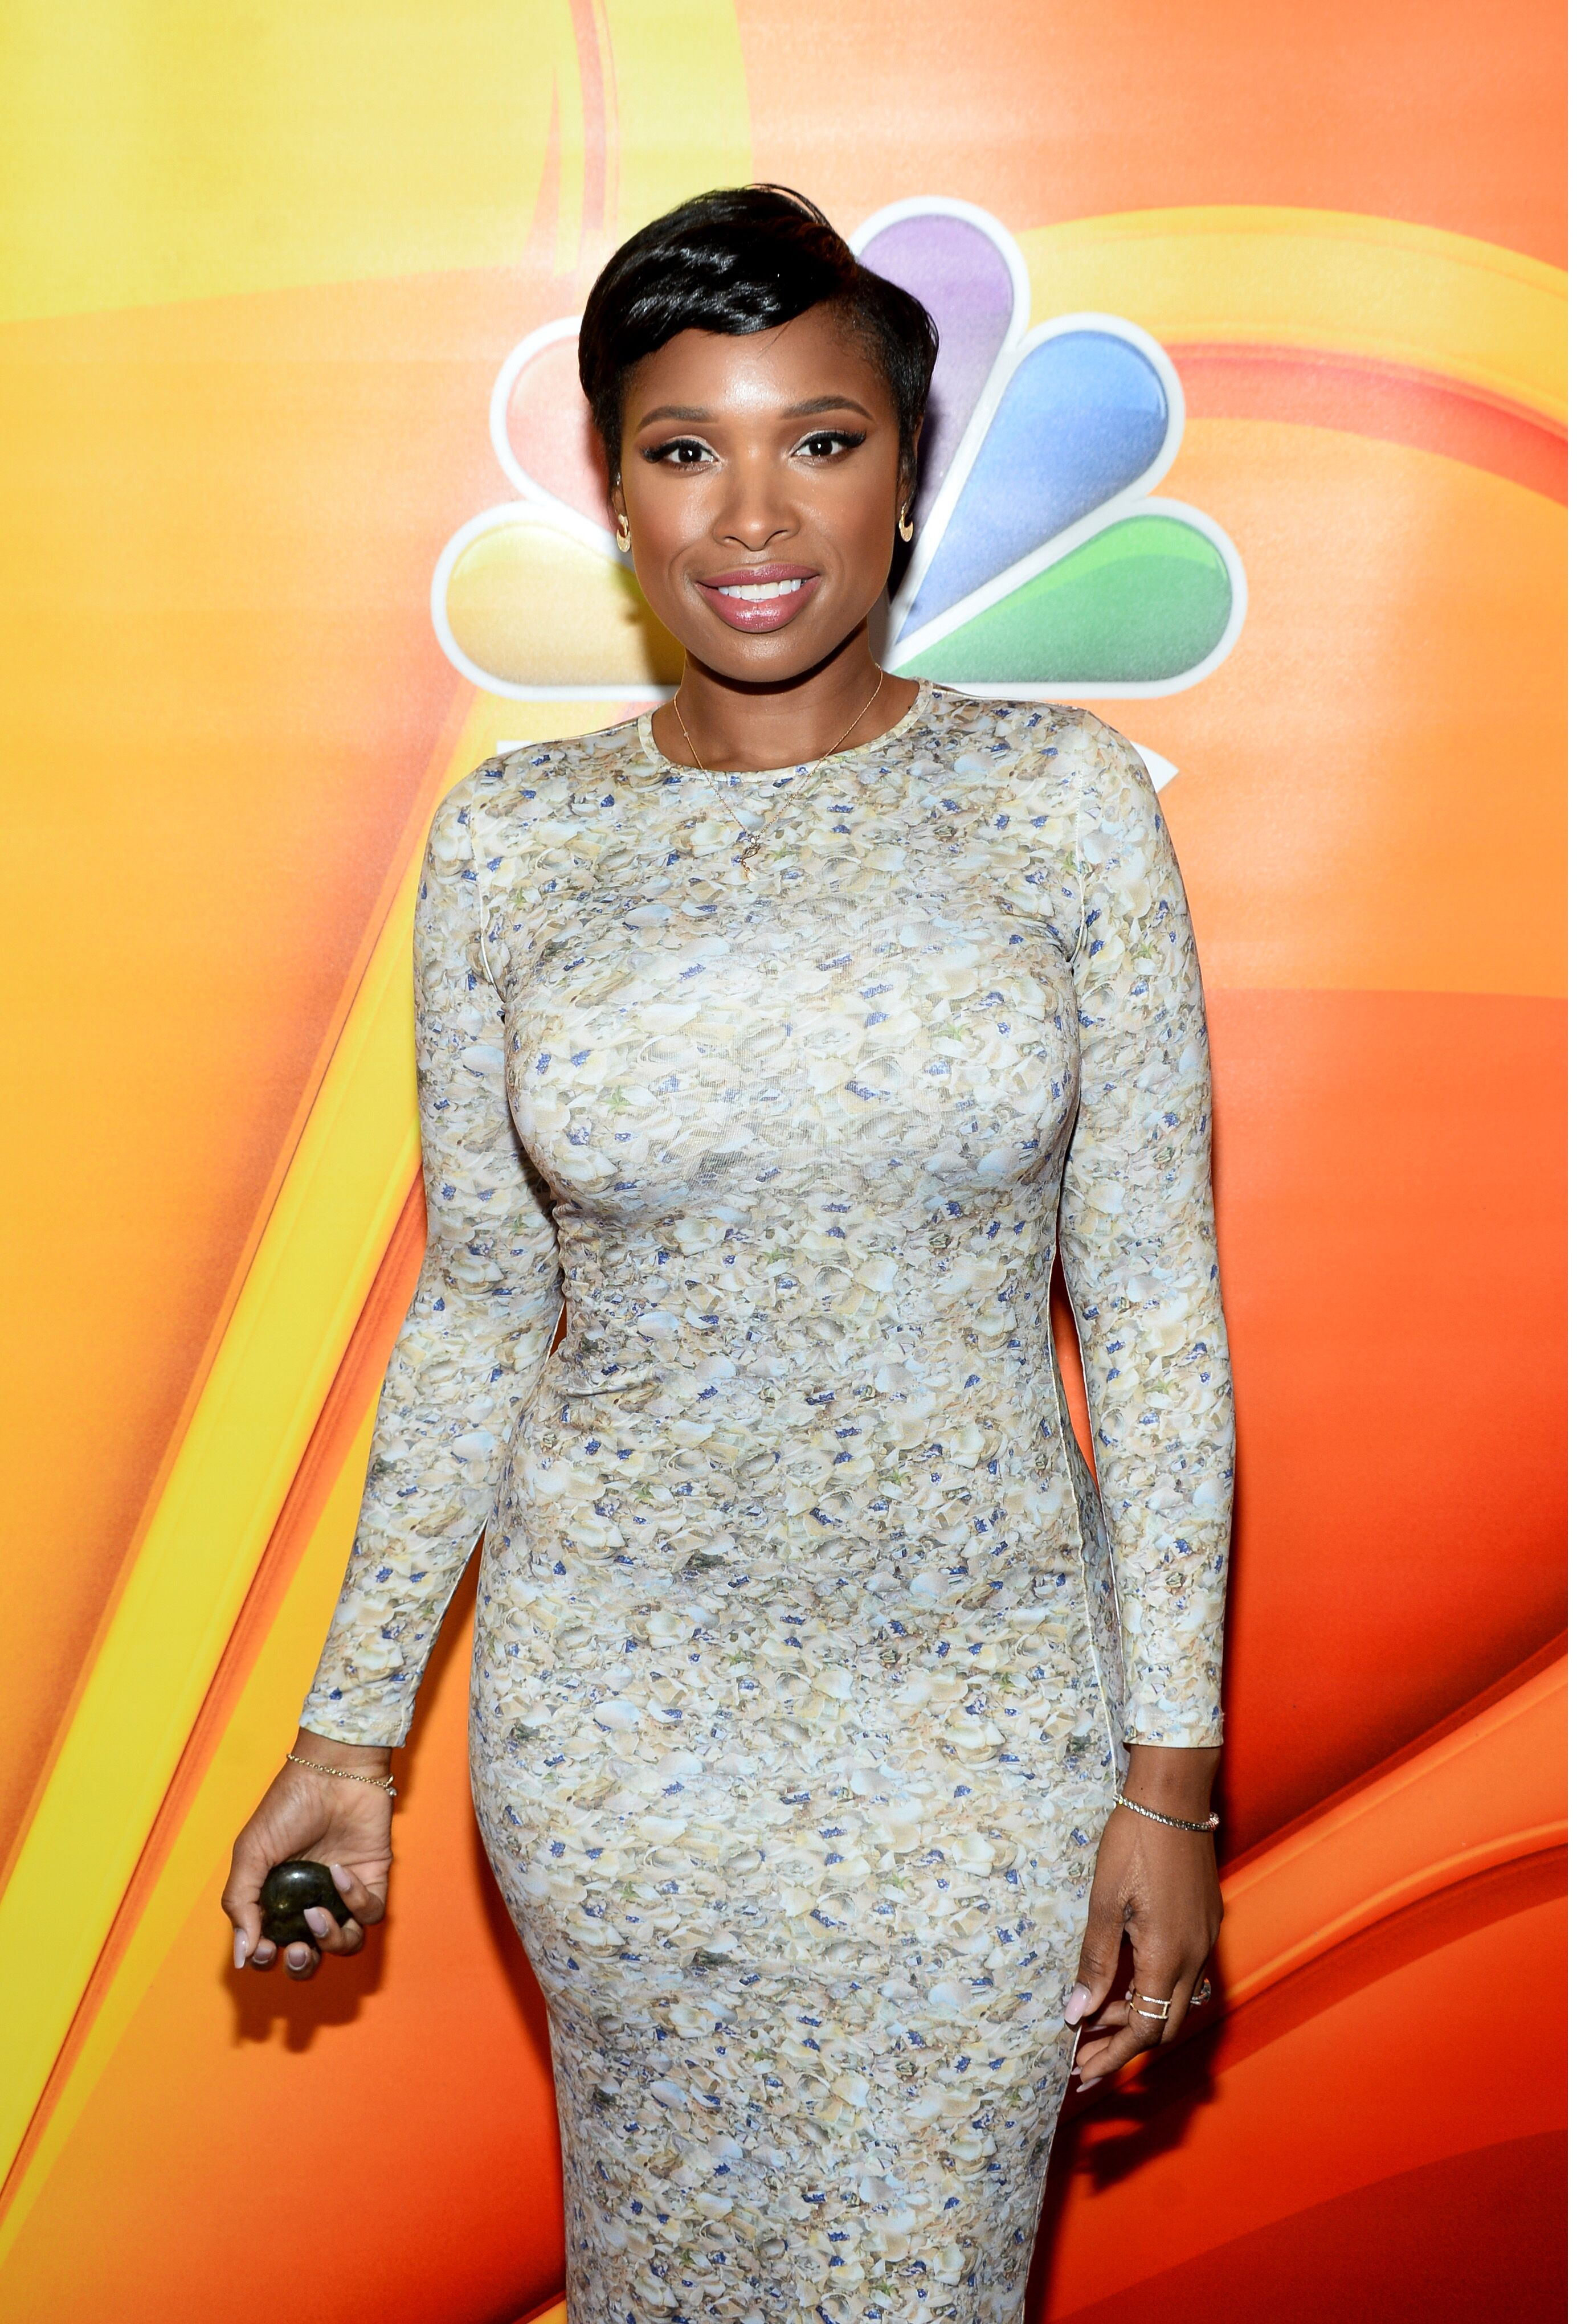 Oscar-winning actress Jennifer Hudson attends the NBCUniversal press day of the 2016 Summer TCA Tour at The Beverly Hilton Hotel on August 2, 2016. | Source: Getty Images